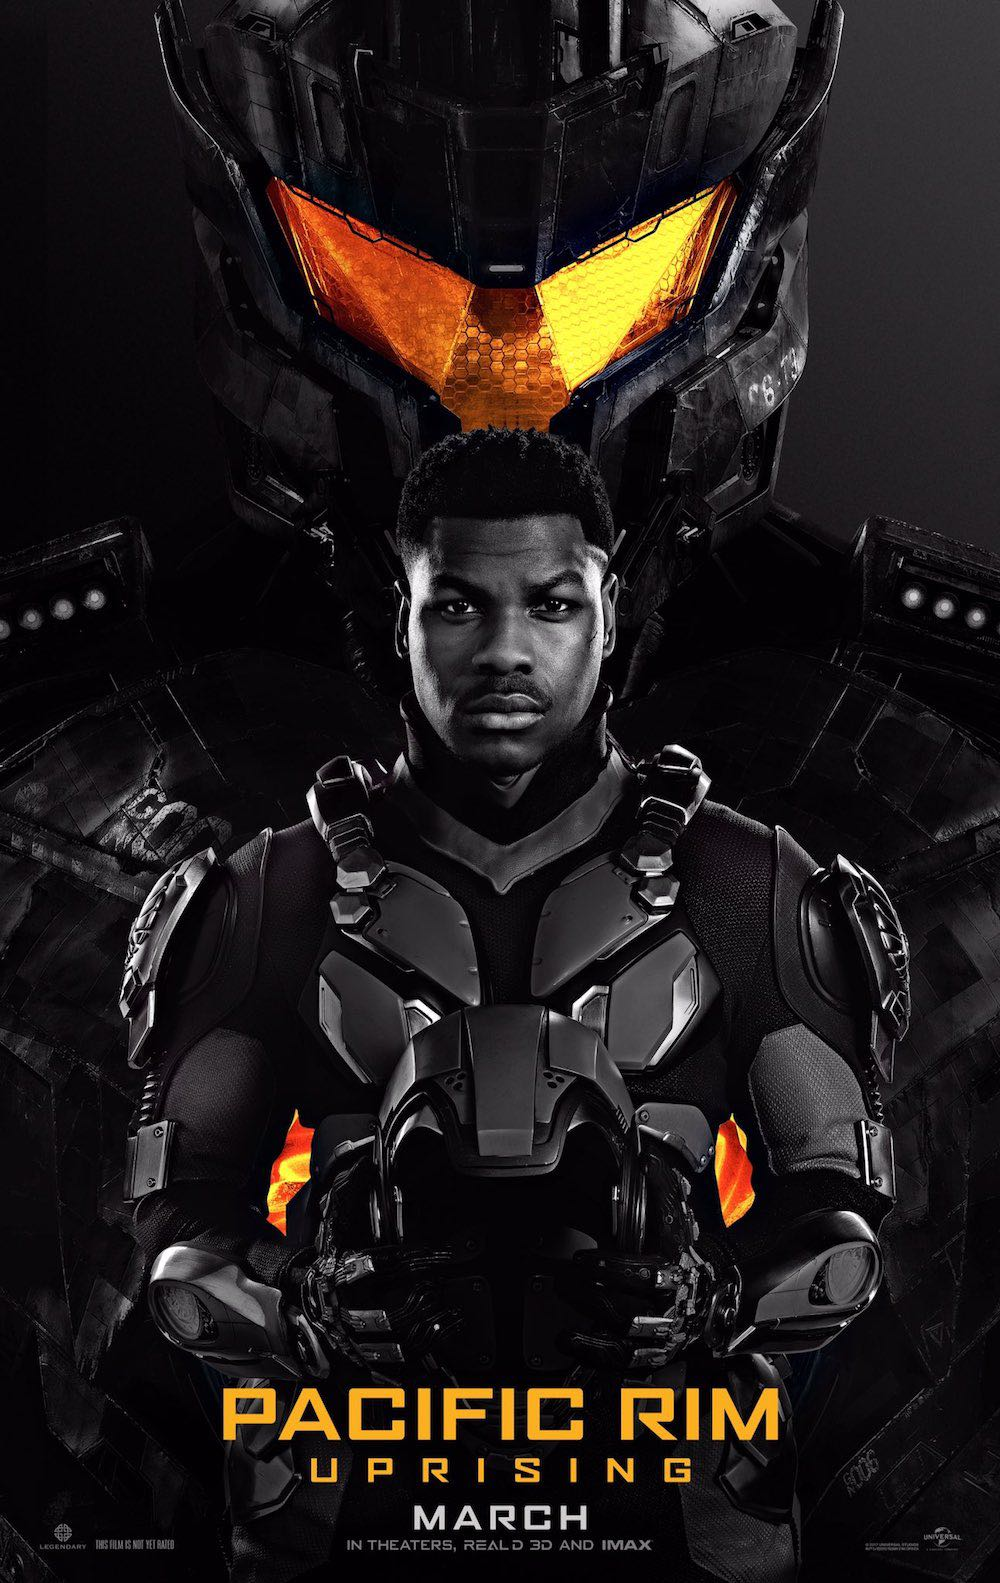 Pacific Rim Uprising Official Poster